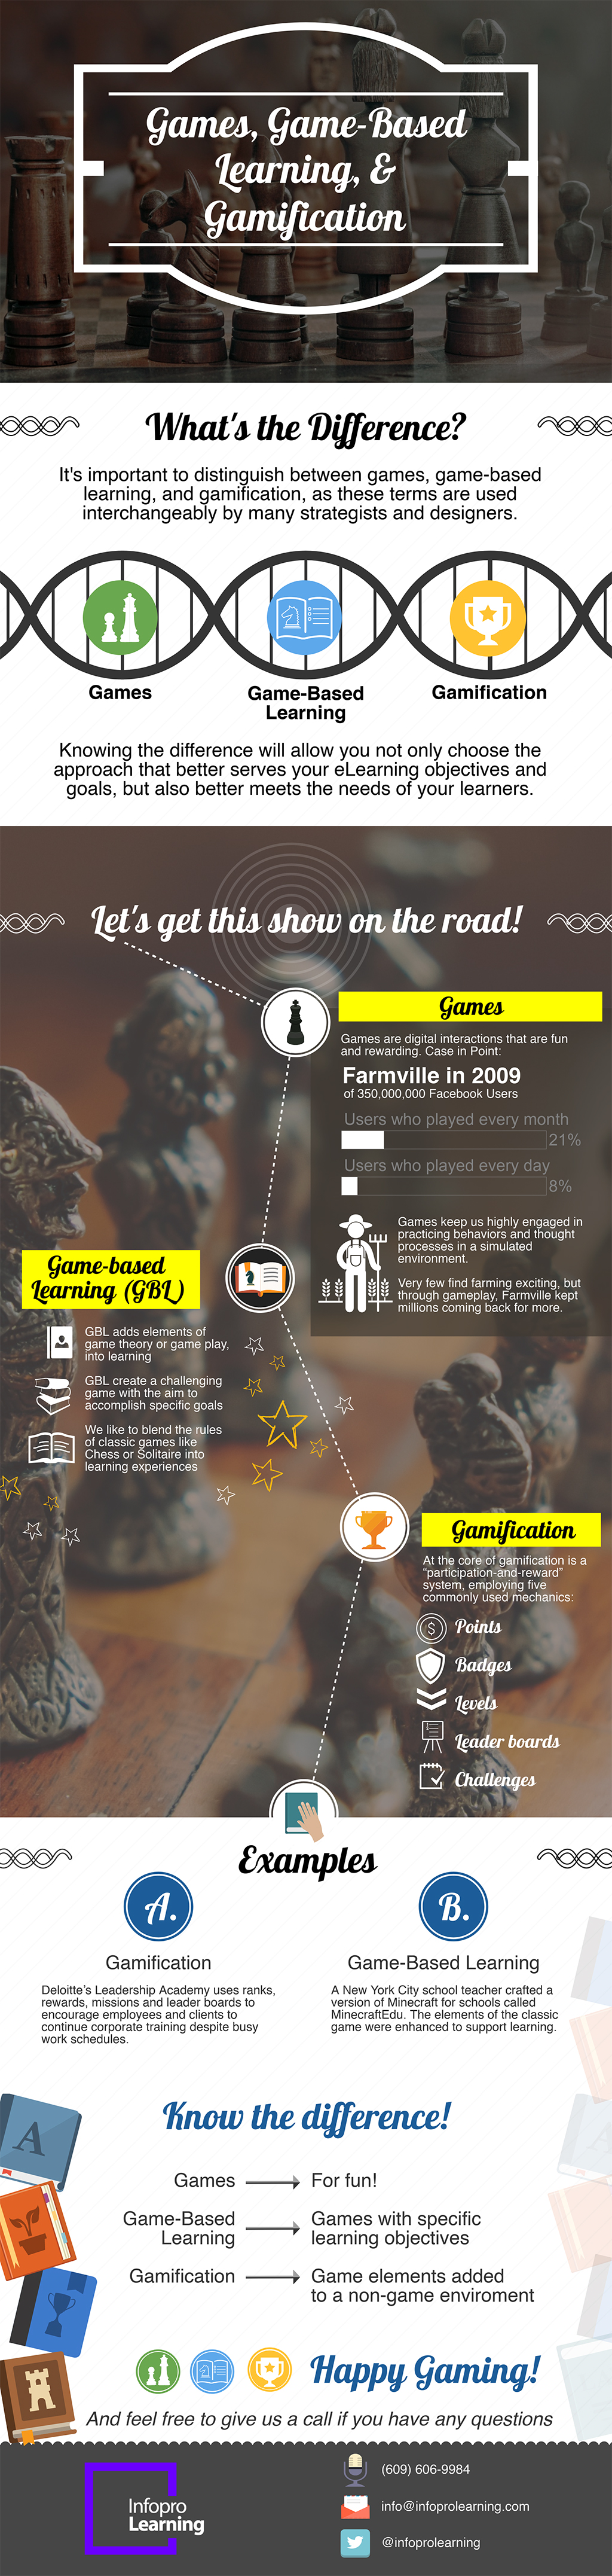 Infographic Guide to Games, Game-Based Learning, and Gamification